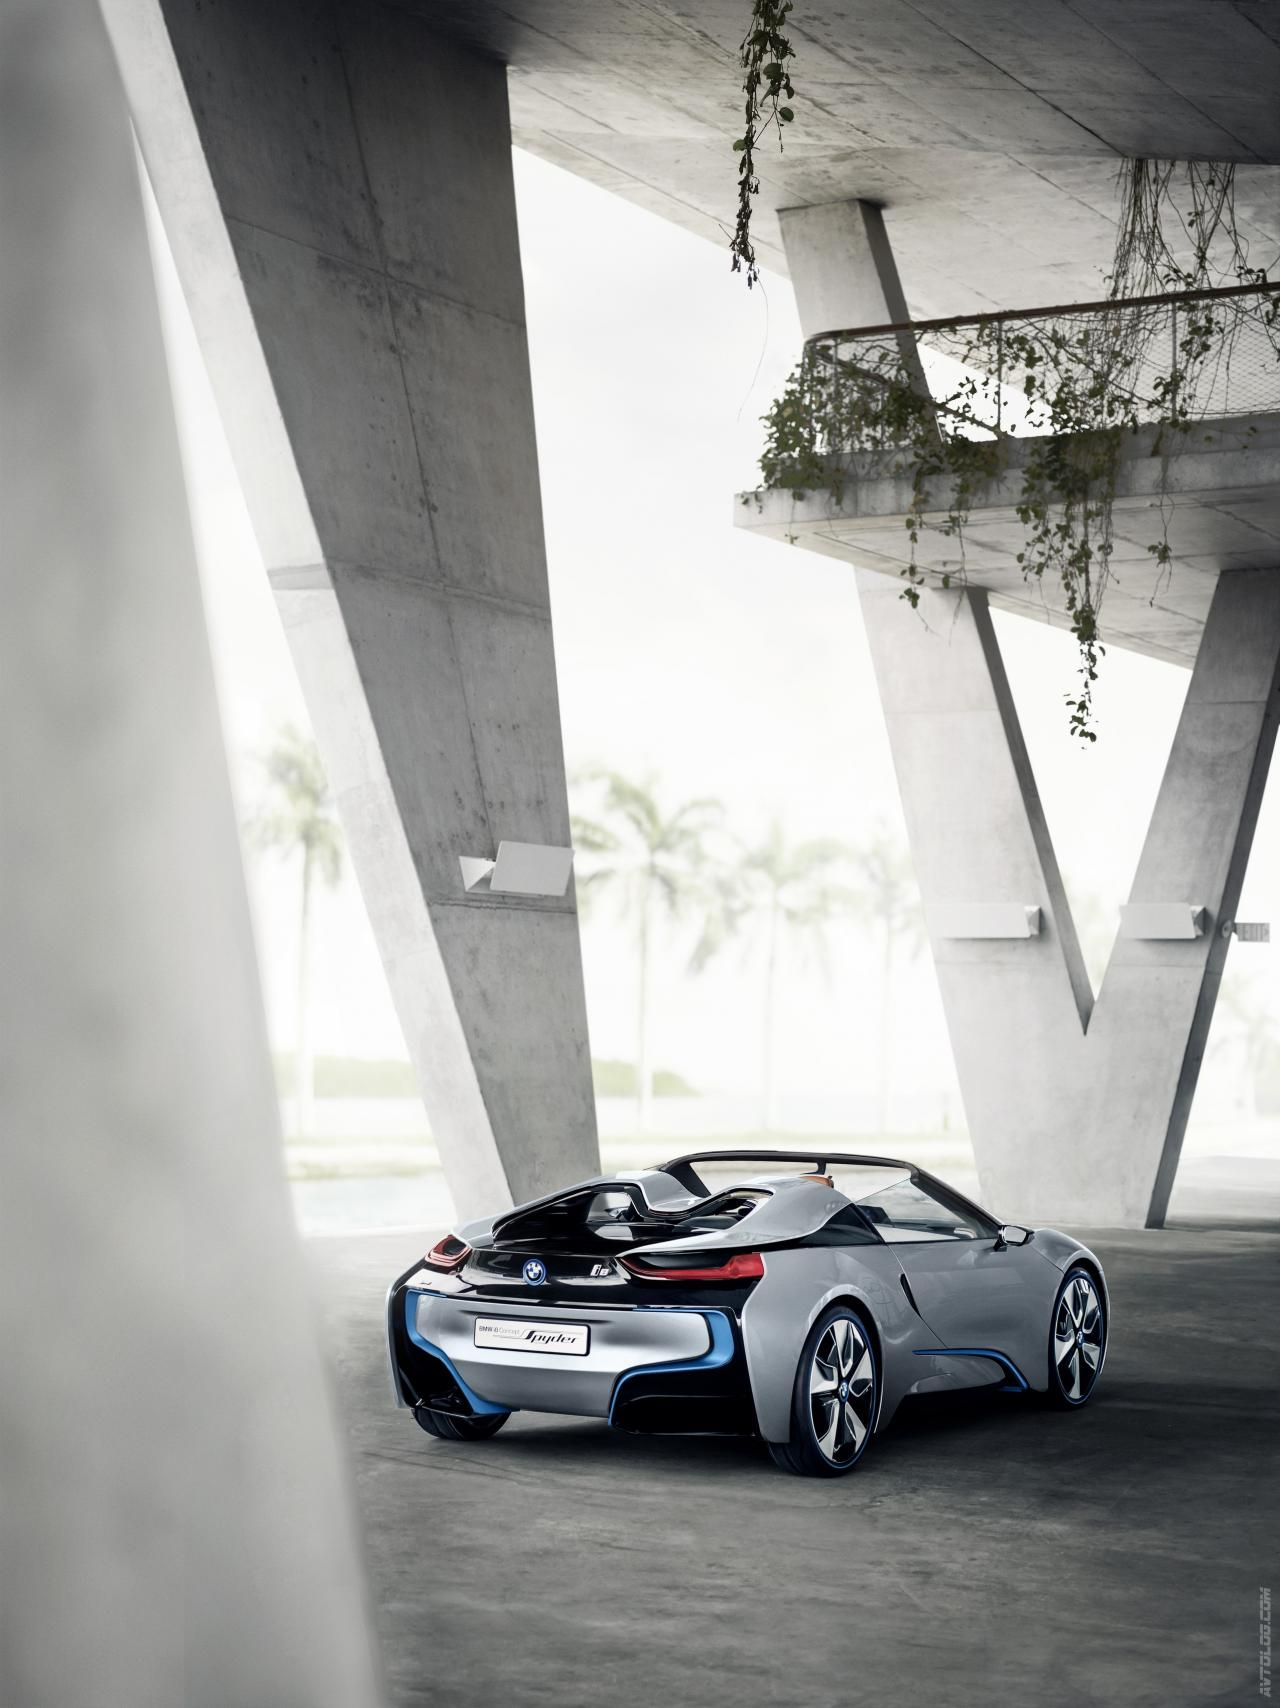 2012 BMW i8 Spyder Concept | F1 | Pinterest | Bmw i8, BMW and Cars